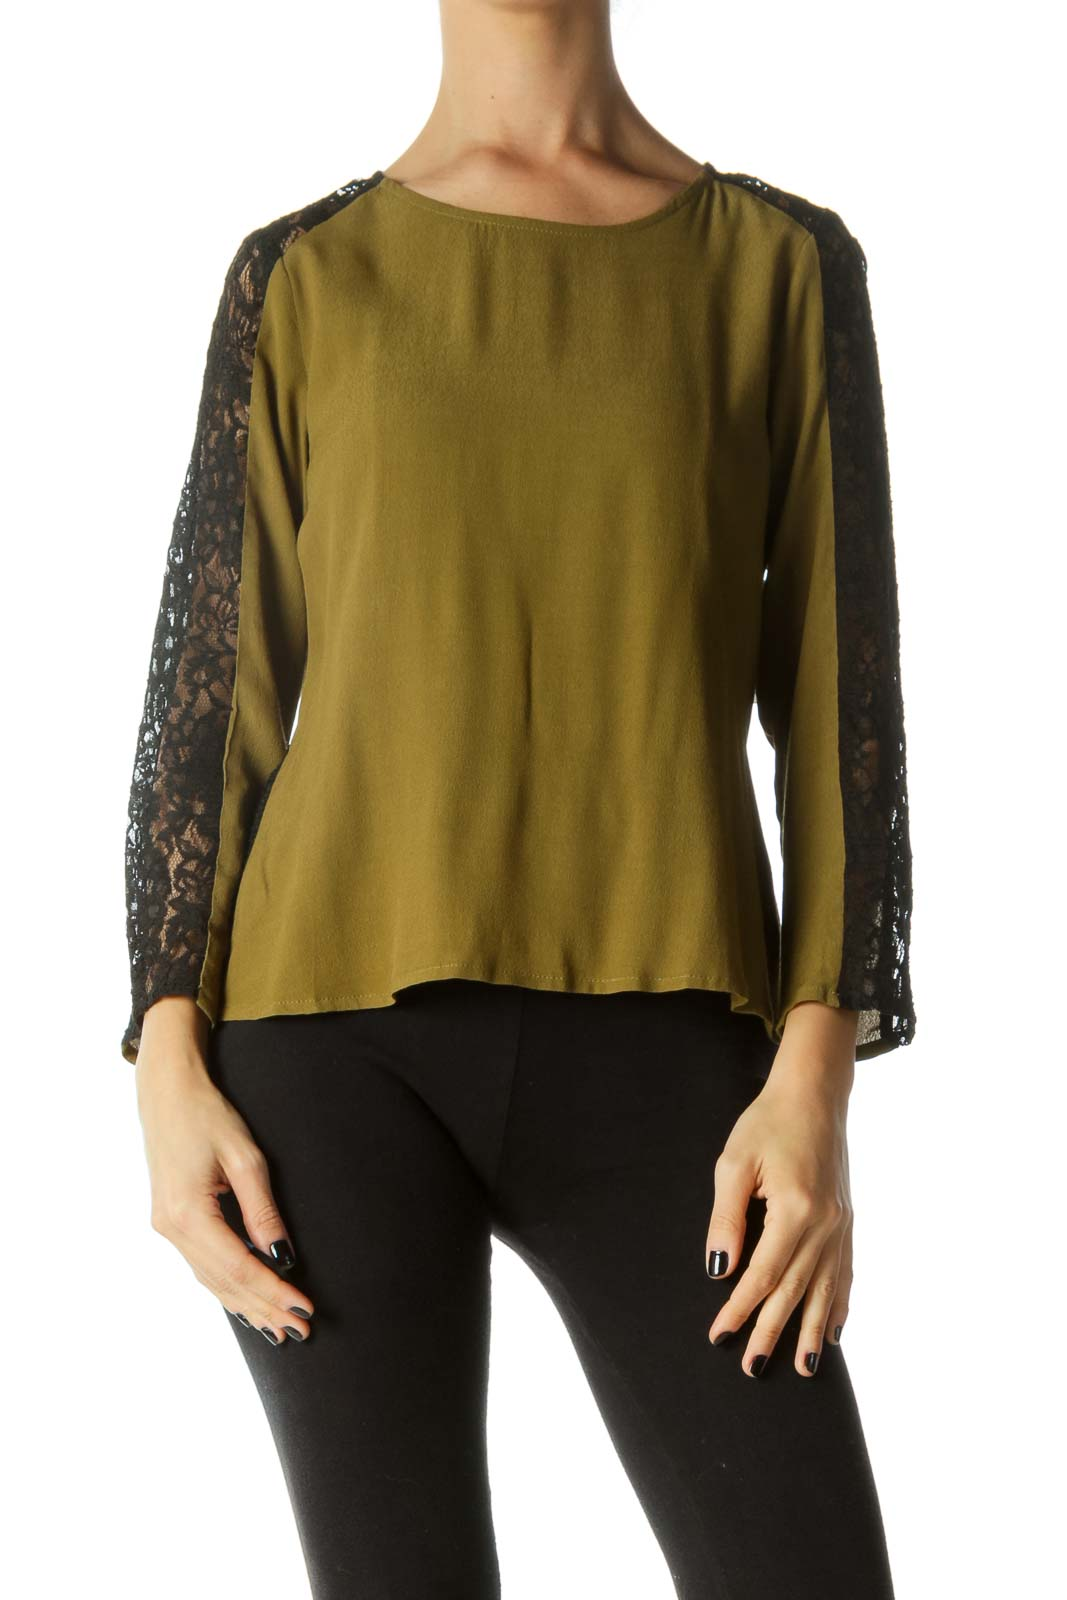 Black & Green Lace See-Through Blouse